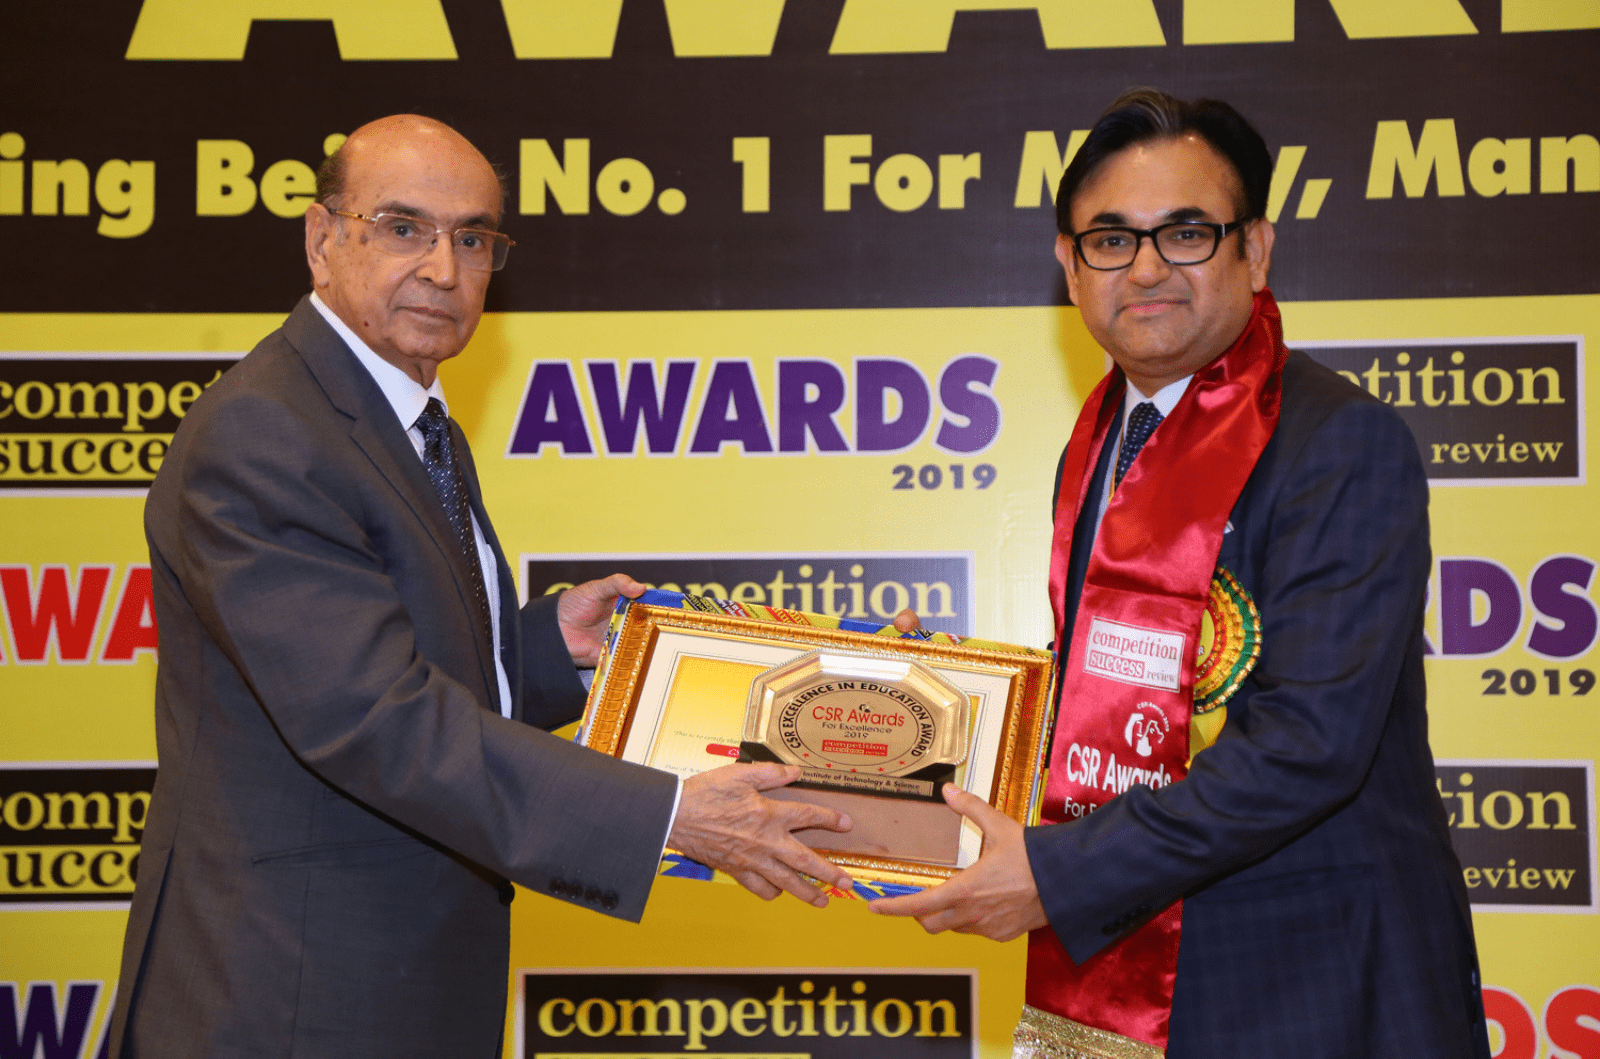 CSR Excellence in Education Award by Competition Success Review